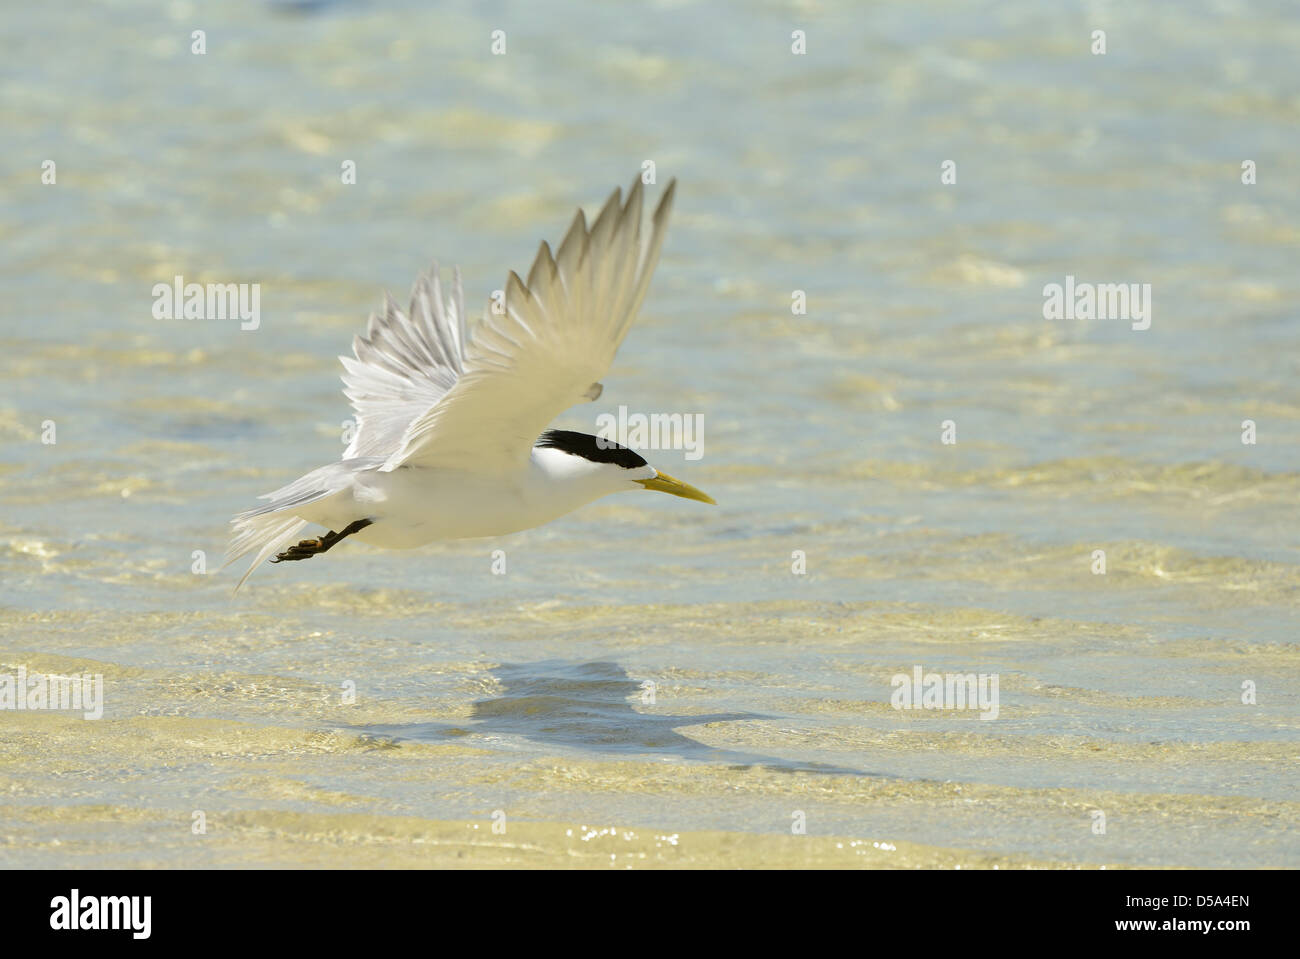 Greater Crested or Swift Tern (Thalasseus bergii) in flight over the sea, Queensland, Australia, November - Stock Image